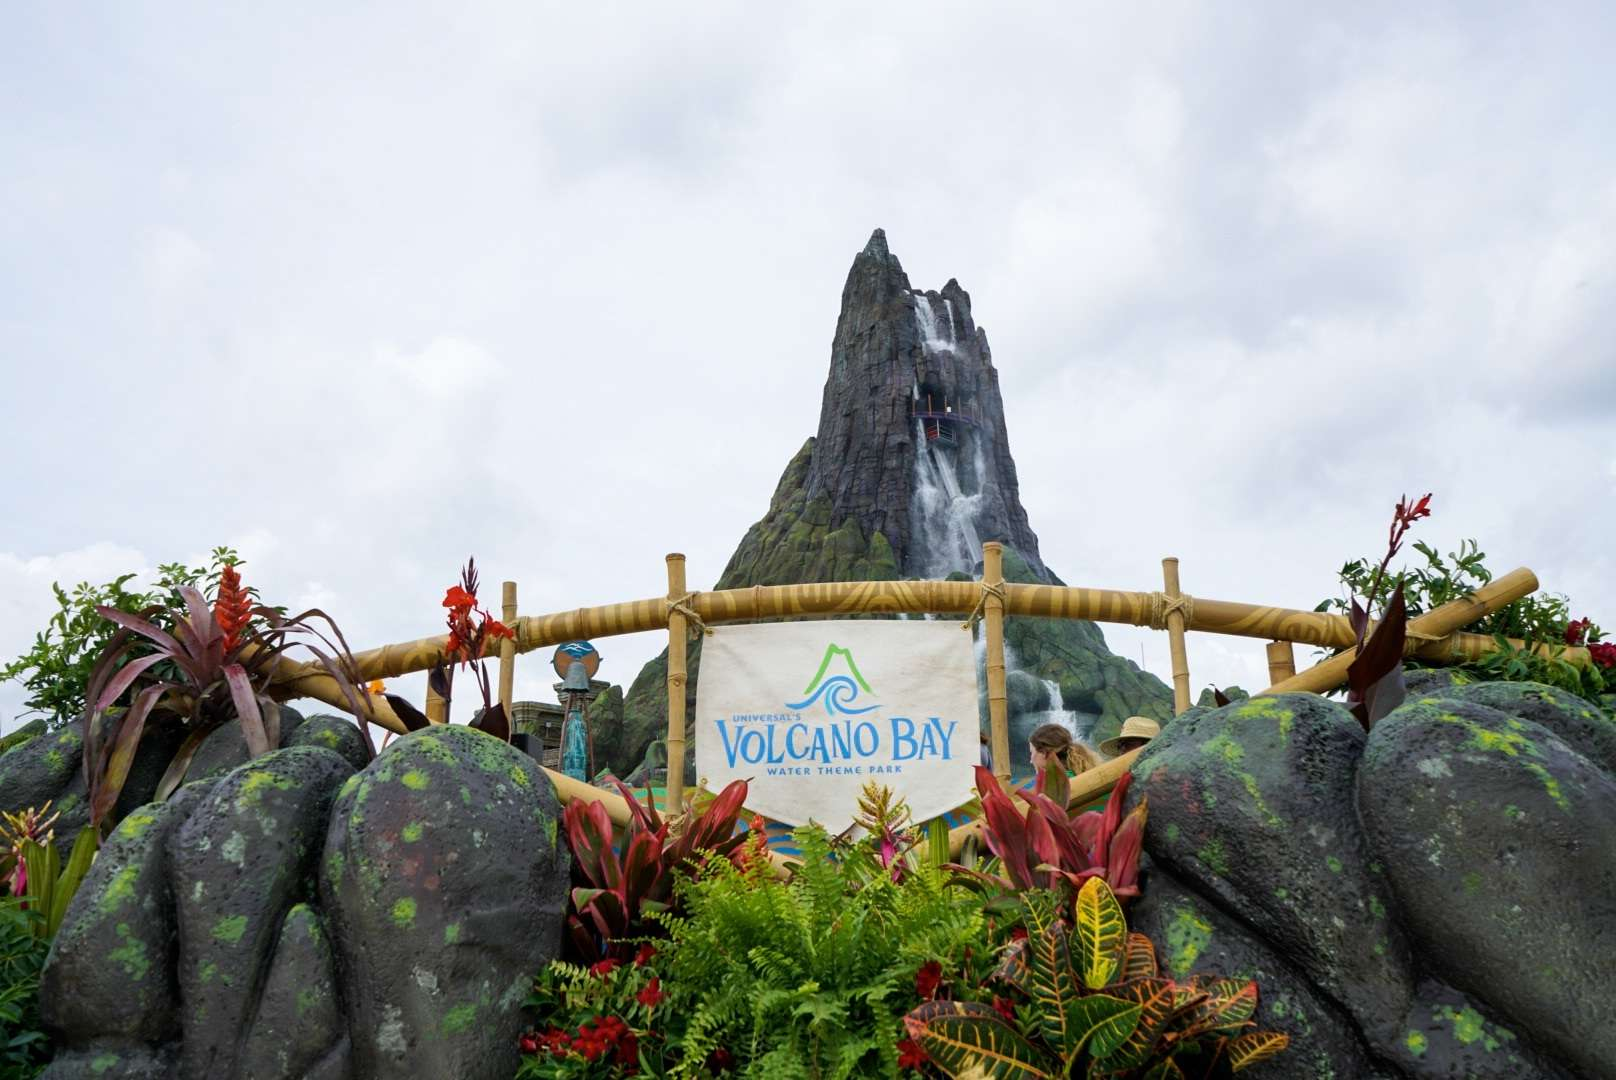 Volcano Bay: 4 biggest takeaways